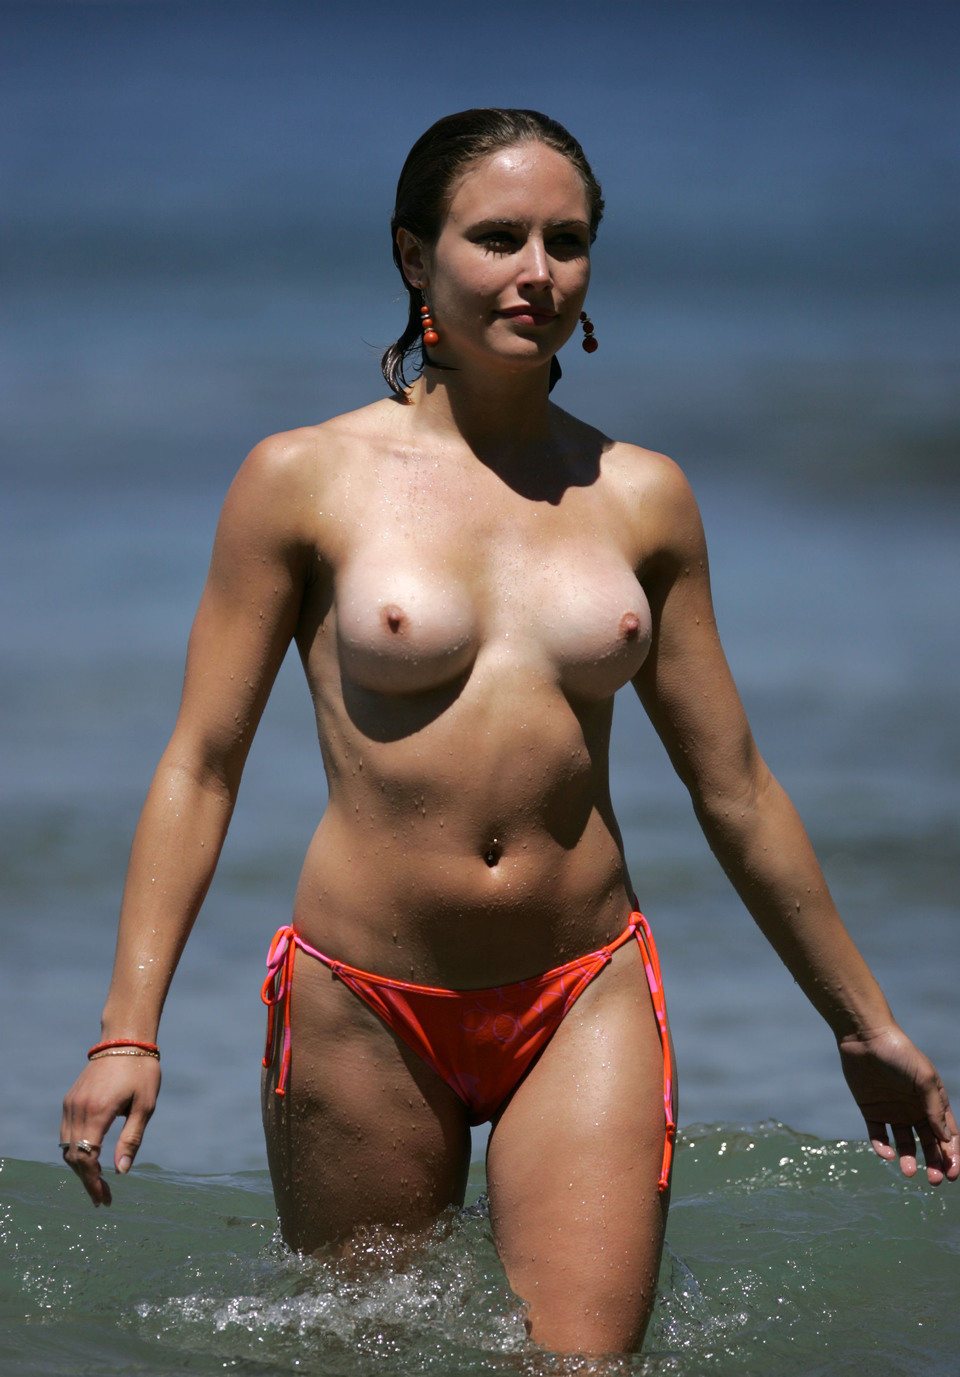 Patricia Heaton Nude Beach Topless Boobs Big Tits Wet -8875